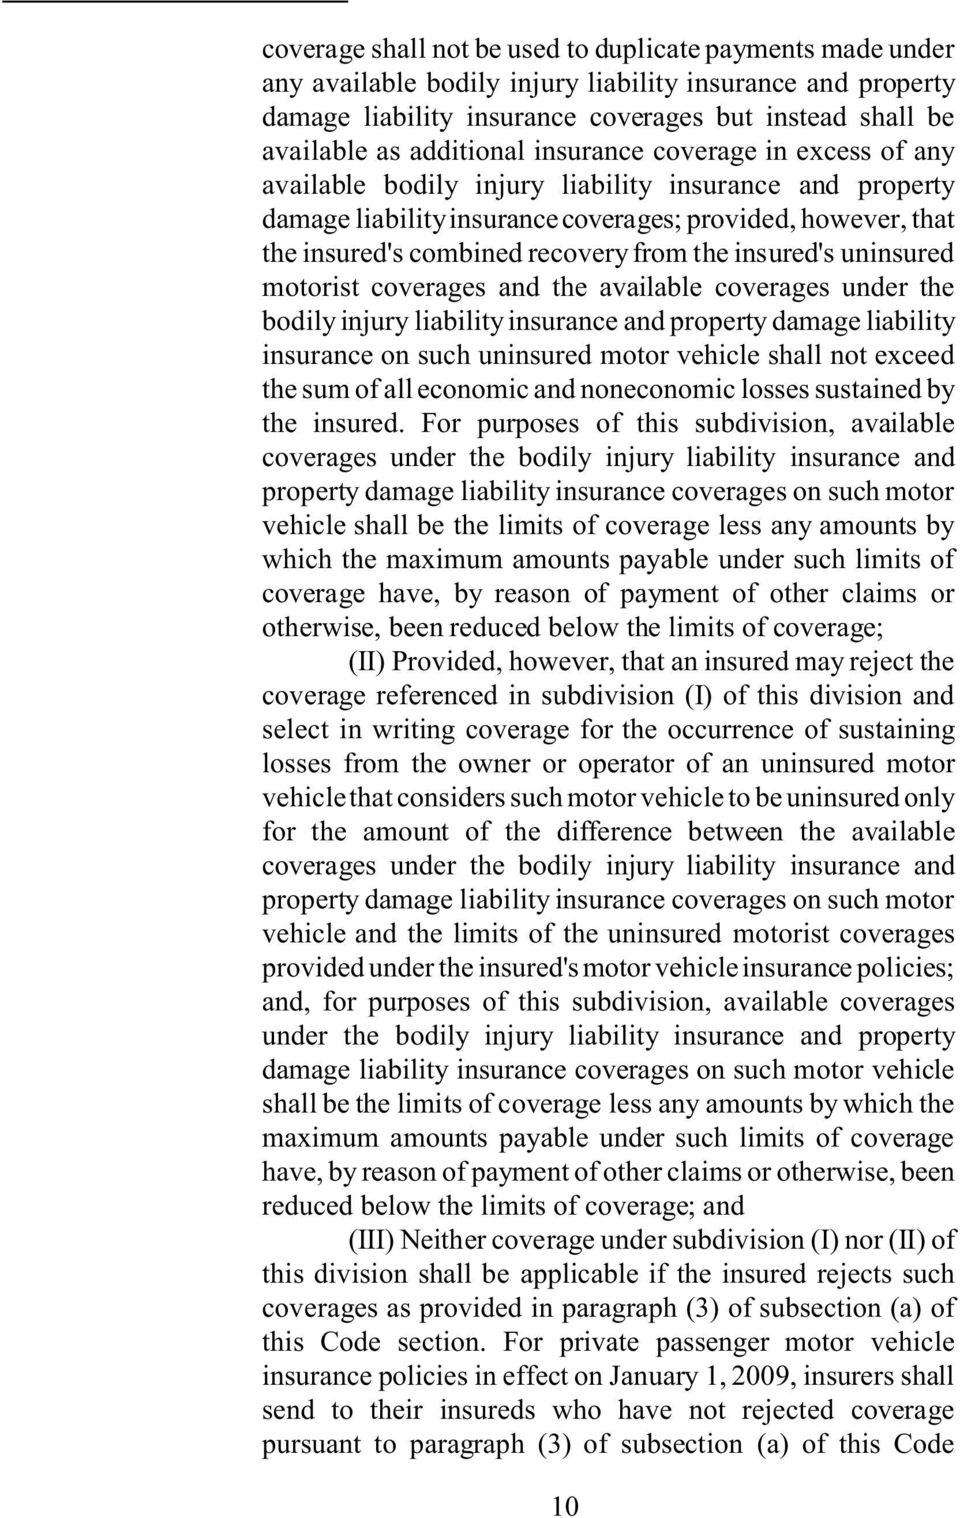 from the insured's uninsured motorist coverages and the available coverages under the bodily injury liability insurance and property damage liability insurance on such uninsured motor vehicle shall